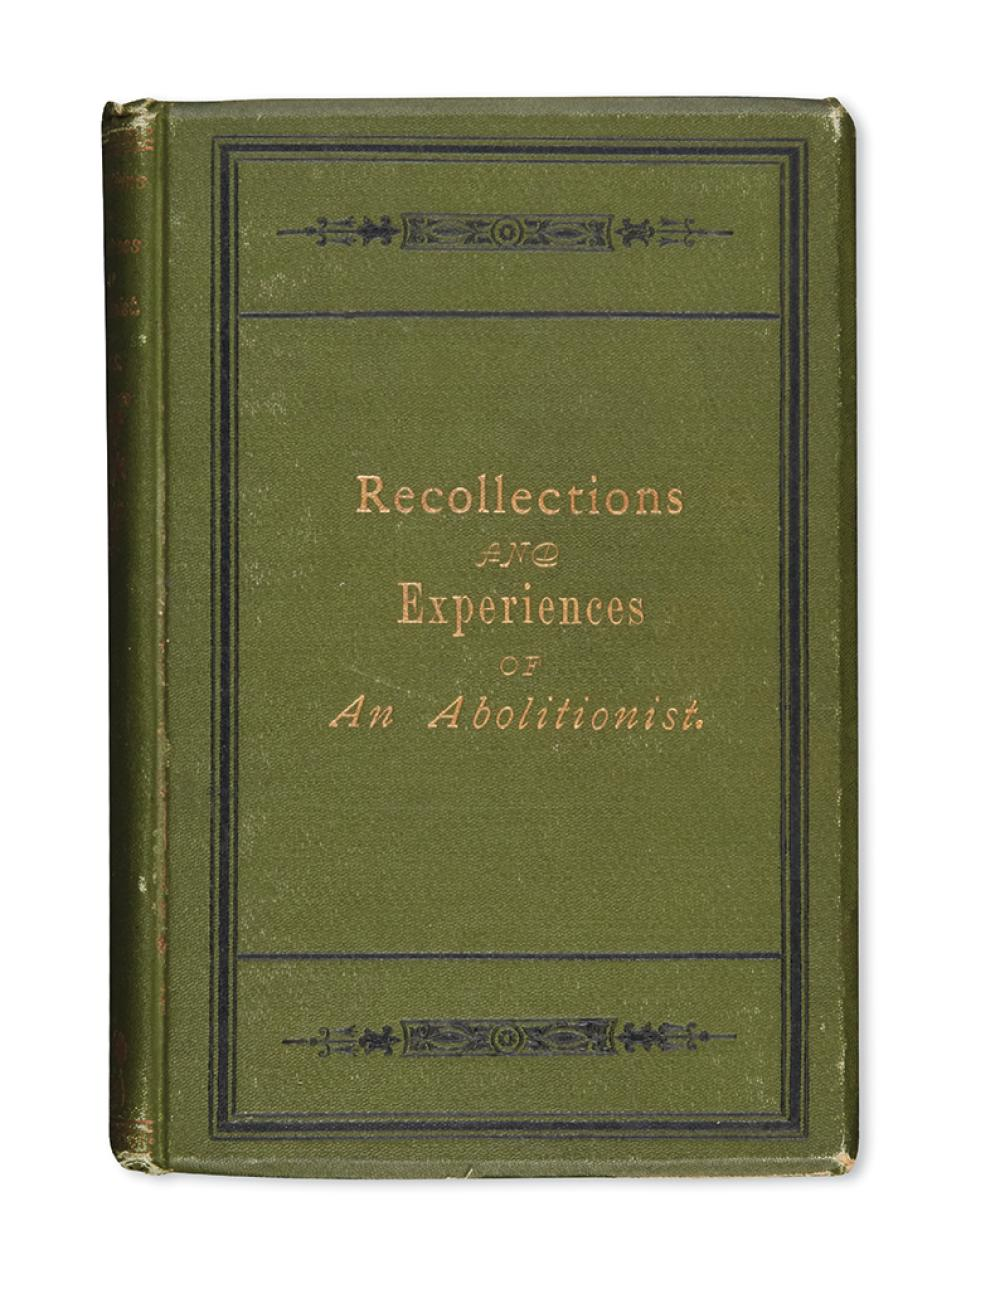 (SLAVERY AND ABOLITION.) Ross, Alexander Milton. Recollections and Experiences of an Abolitionist from 1855 to 1865.